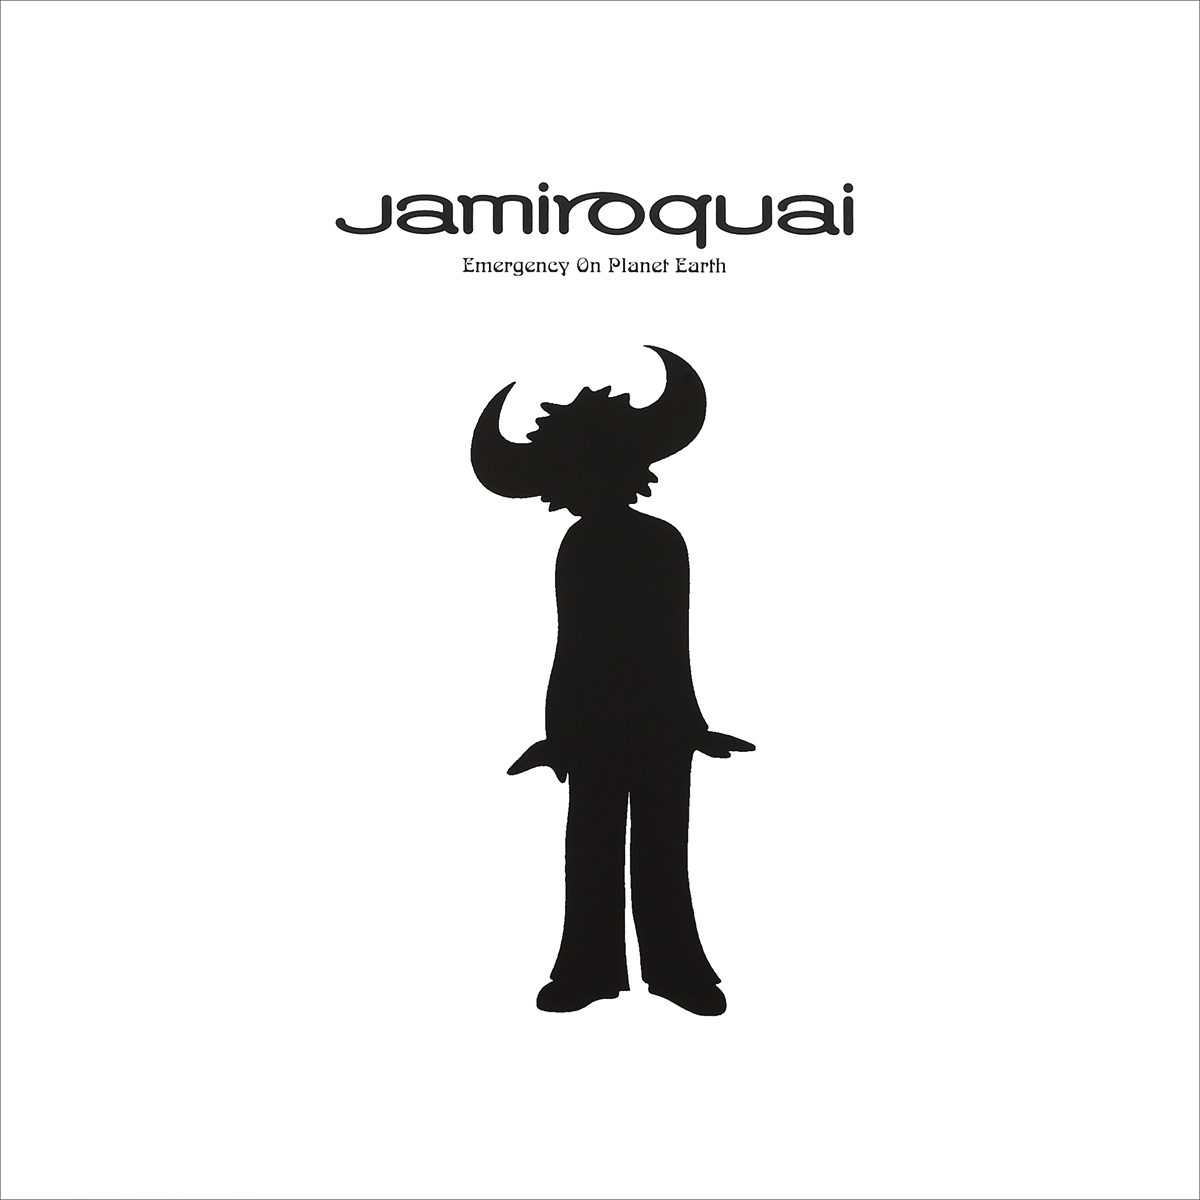 Jamiroquai Jamiroquai. Emergency On Planet Earth (2 LP) jamiroquai jamiroquai emergency on planet earth 2 lp 180 gr